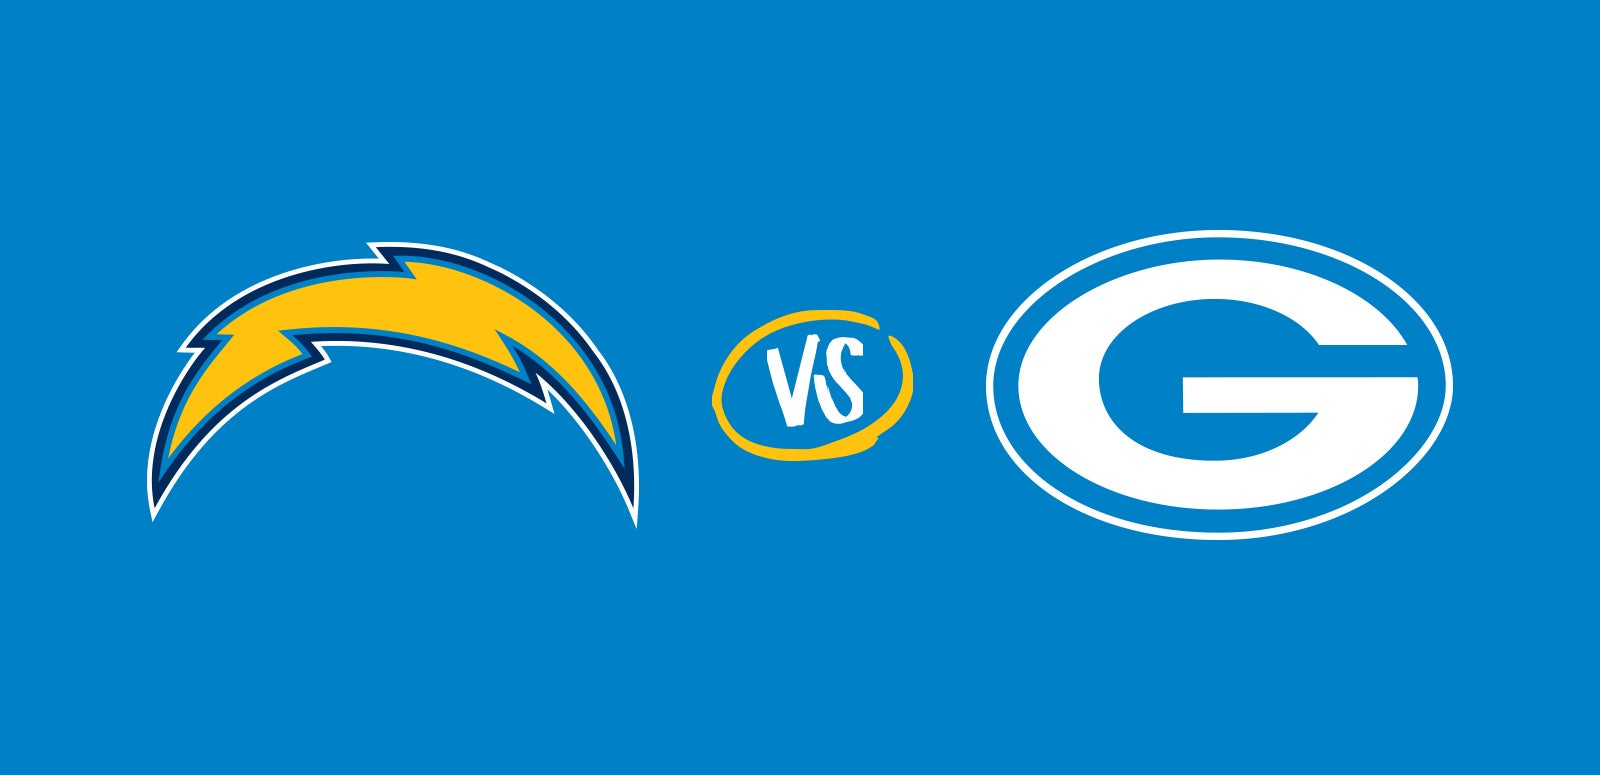 NFL: Los Angeles Chargers vs. Green Bay Packers